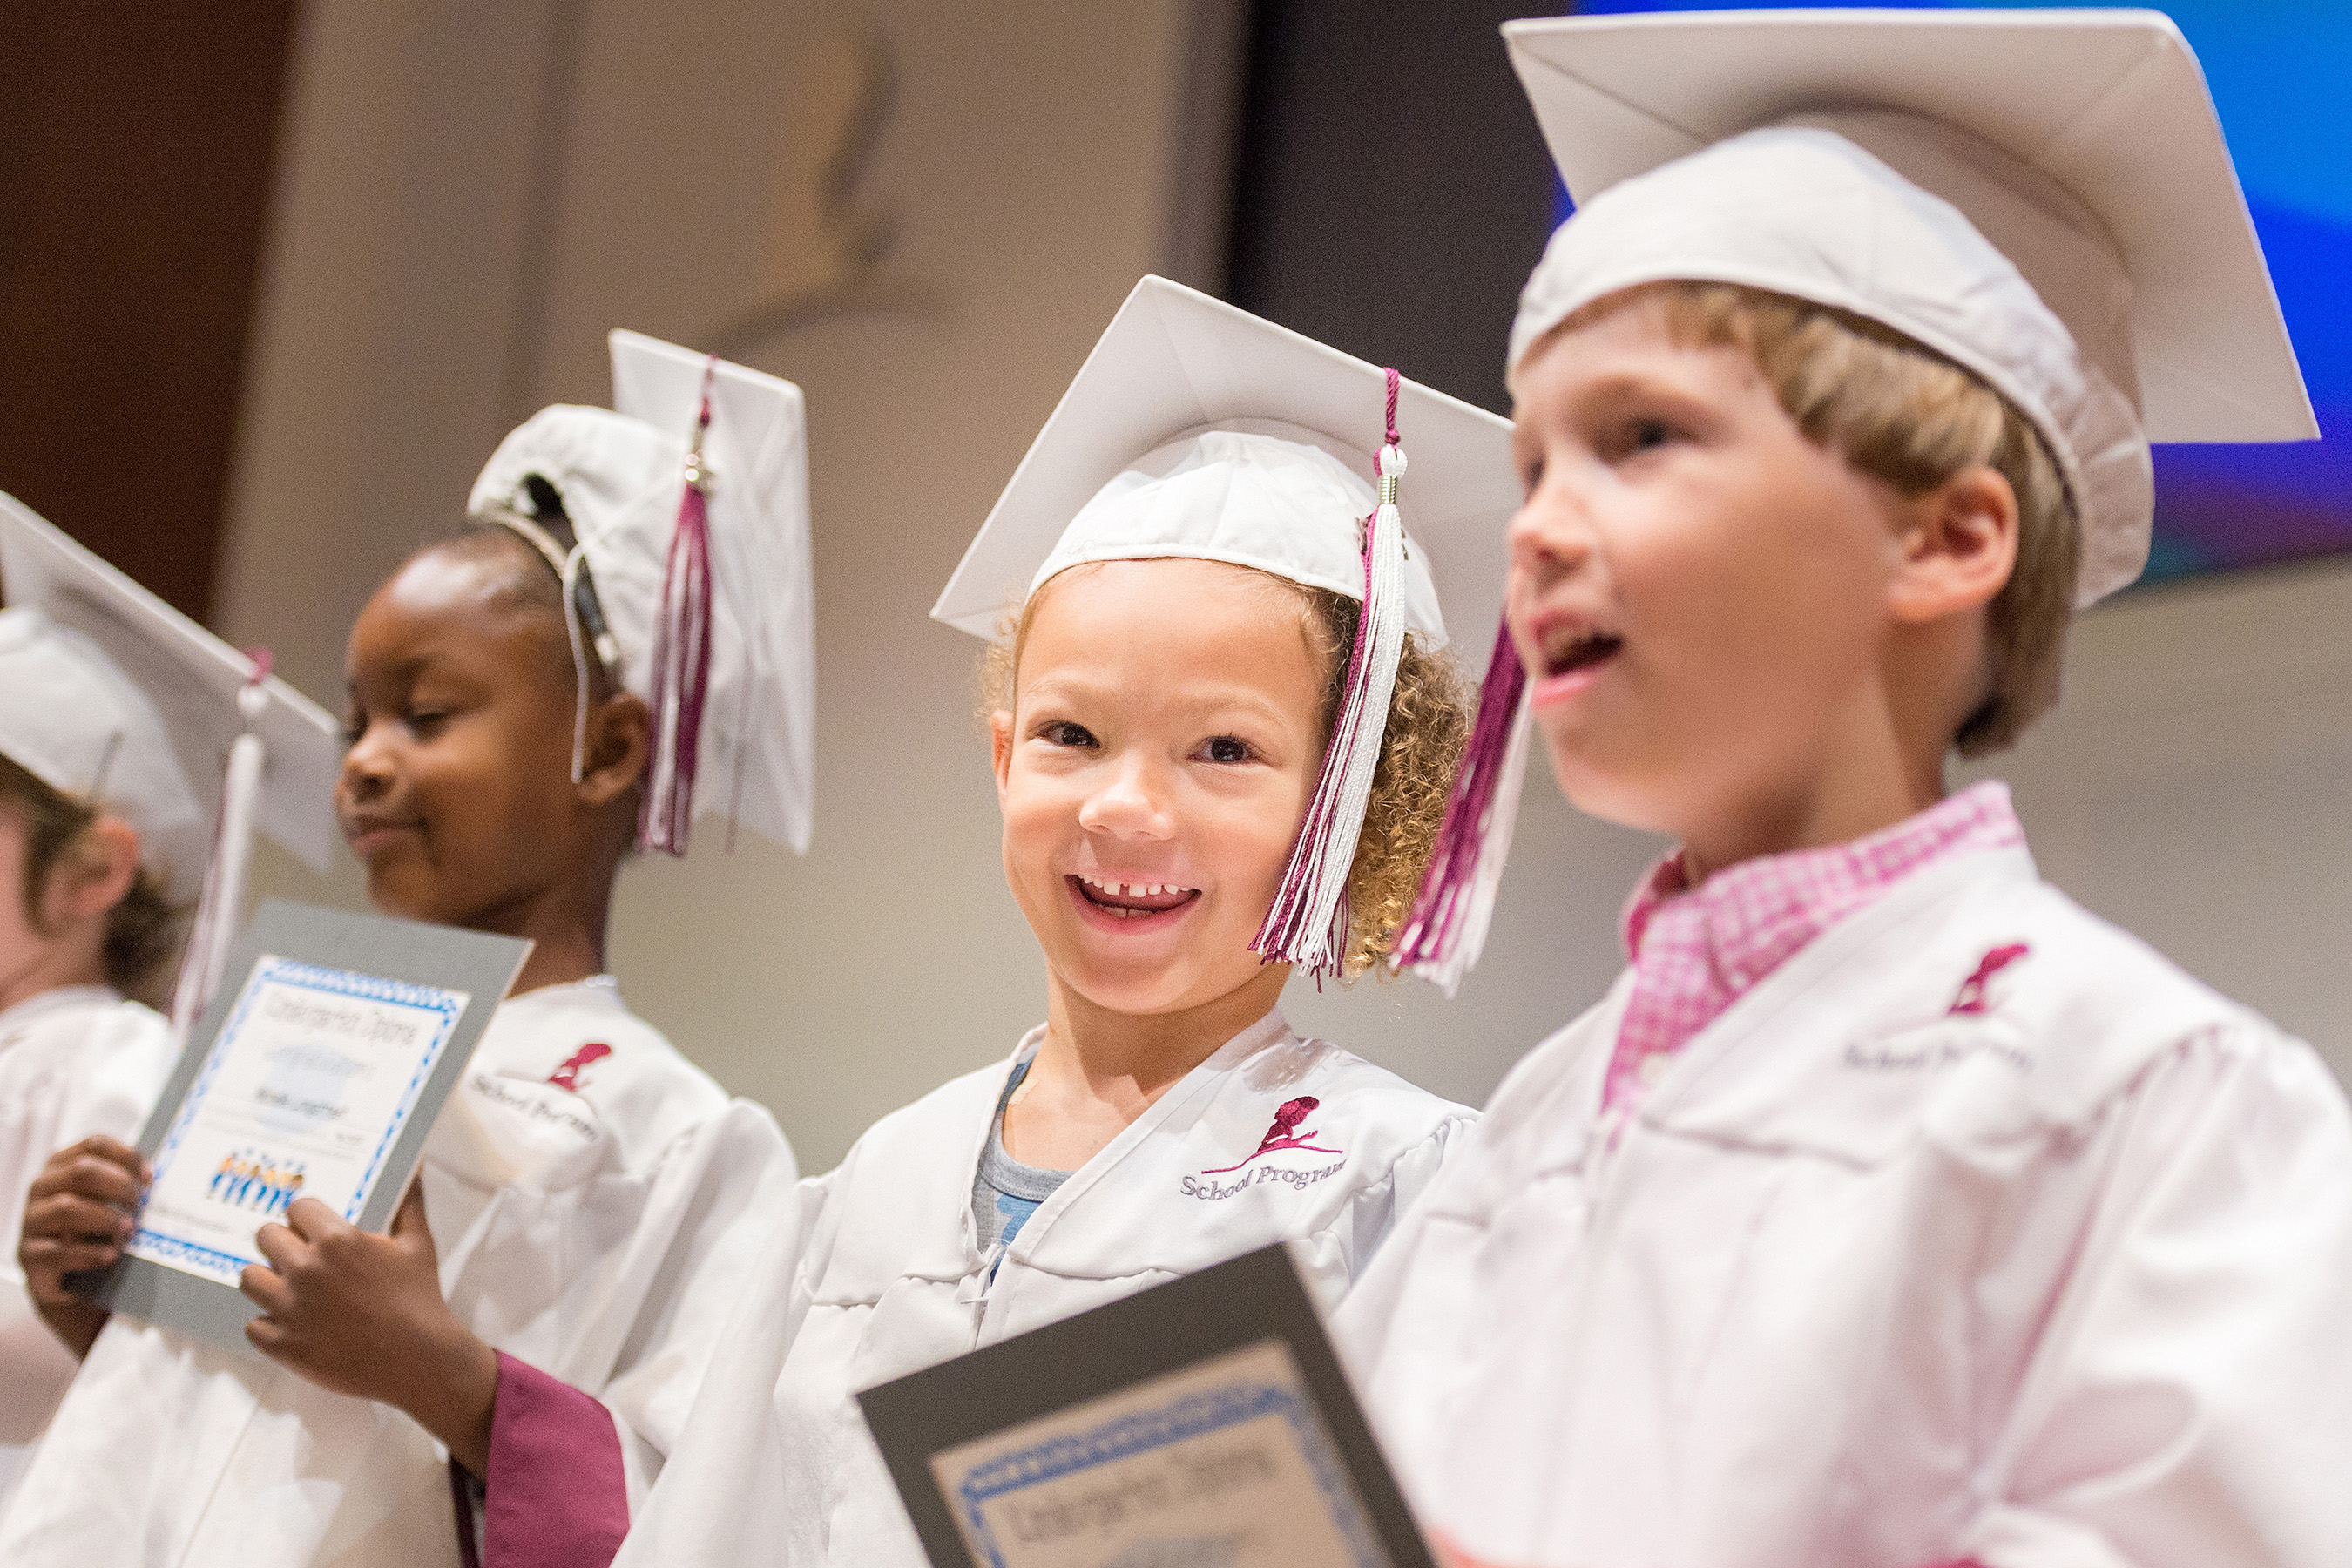 It's an experience taken for granted by some students, but for some patients at St. Jude Children's Research Hospital, kindergarten graduation is a milestone worth the celebration.